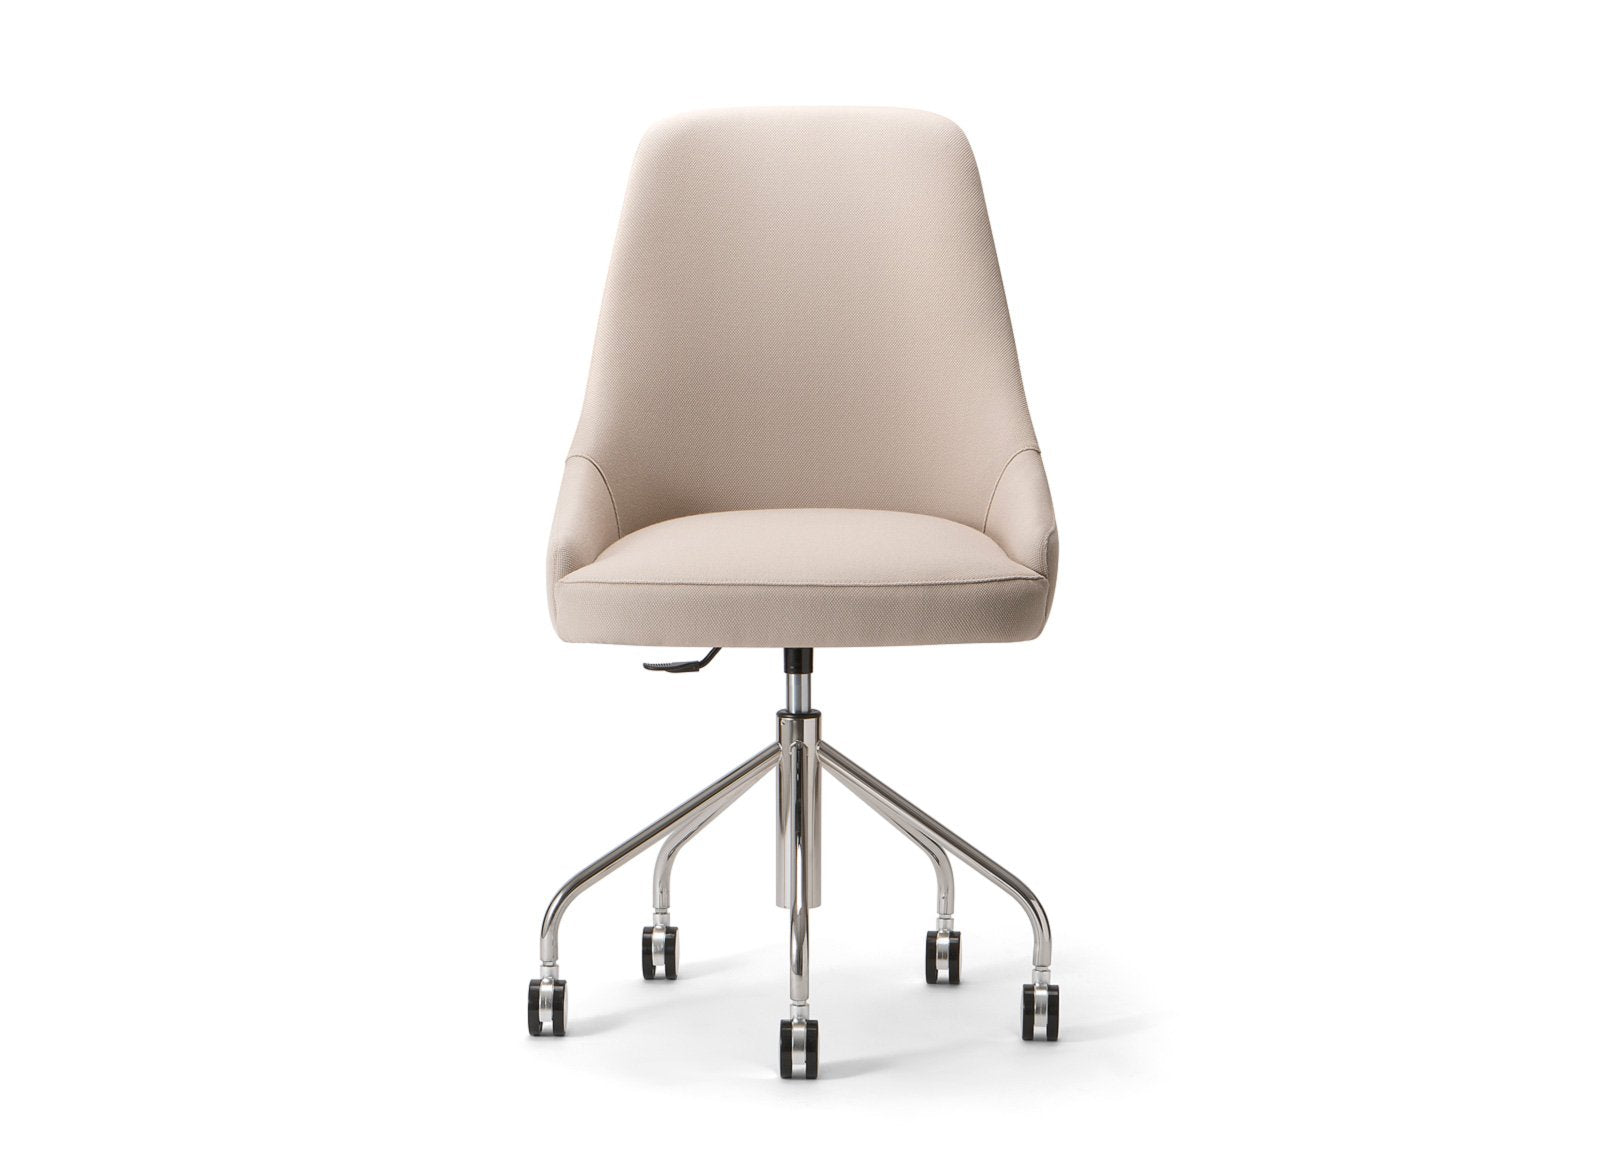 Adima 01 Side Chair c/w Wheels 2-Torre-Contract Furniture Store